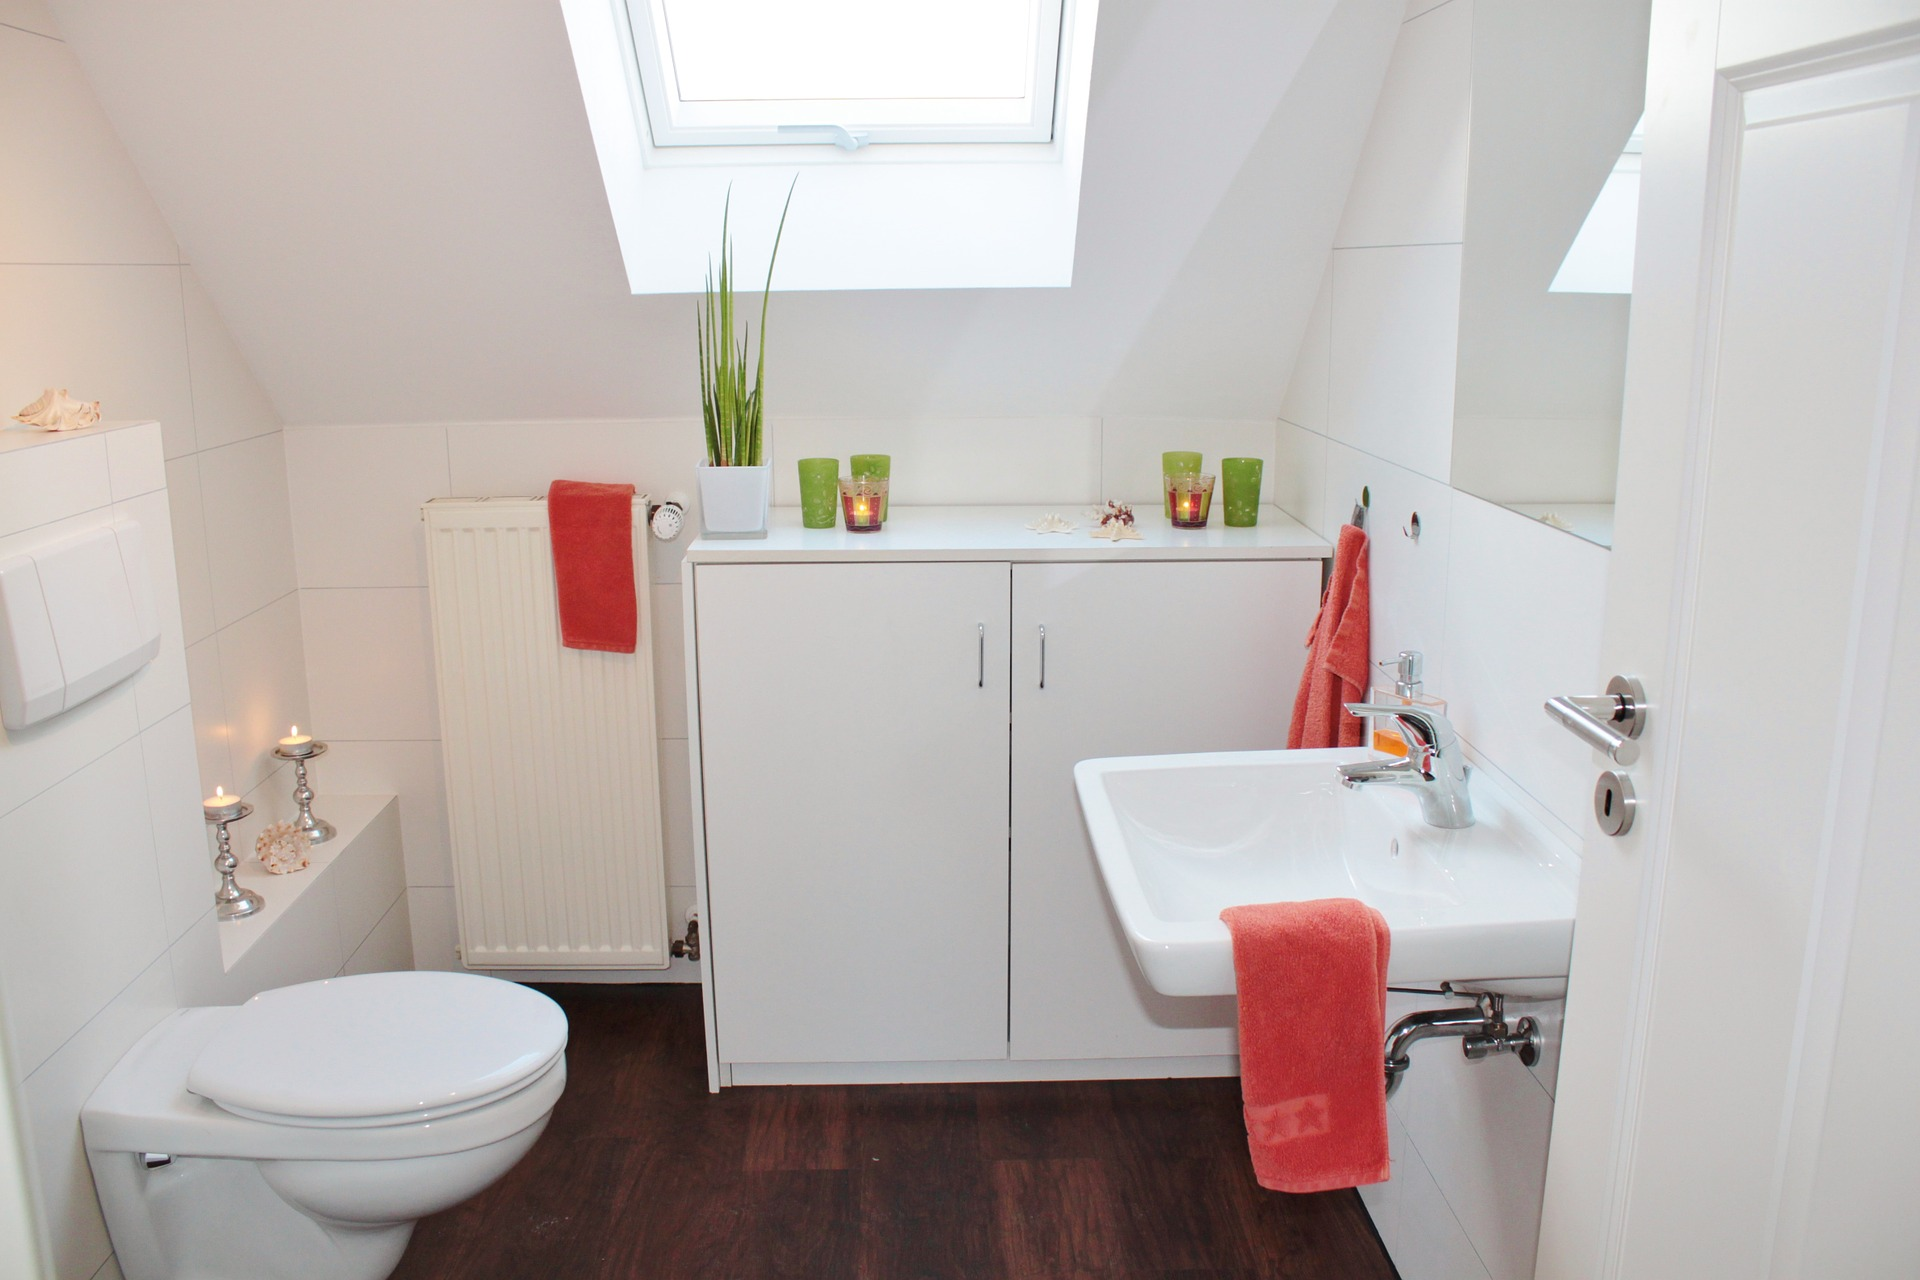 How much to fit a new bathroom - What Size Toilet Seat You Choose Is A Very Good Question As Toilet Seats Do Not Come In A Standard Size Different Toilets Require Different Seats